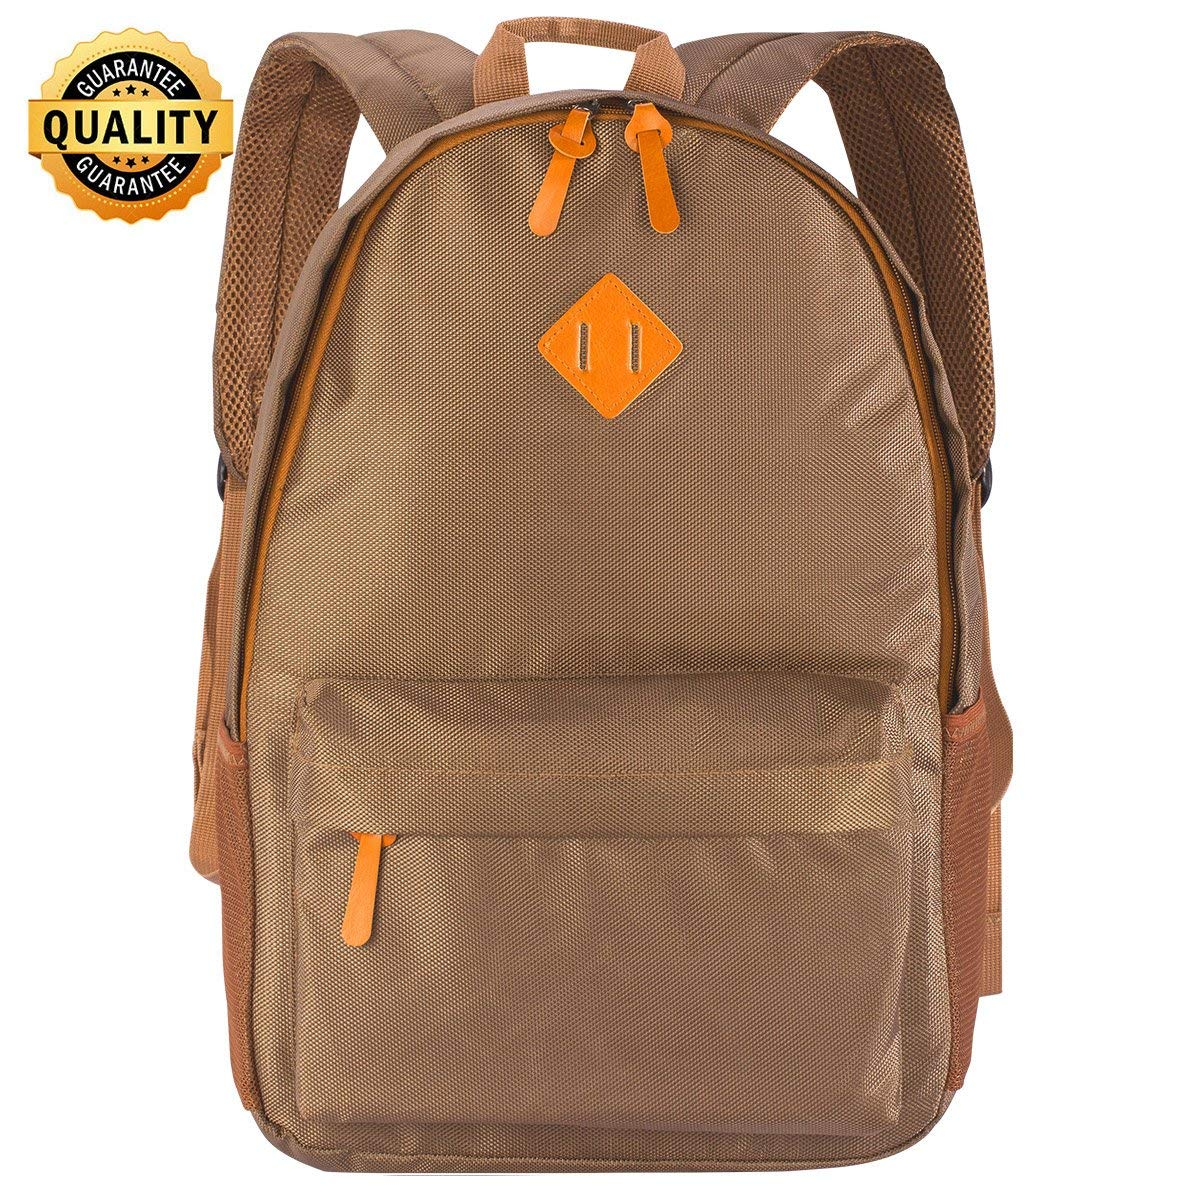 6f818625ed WOT I Bookbags School Backpack Backpack for School Bookbags for Men Fits  14